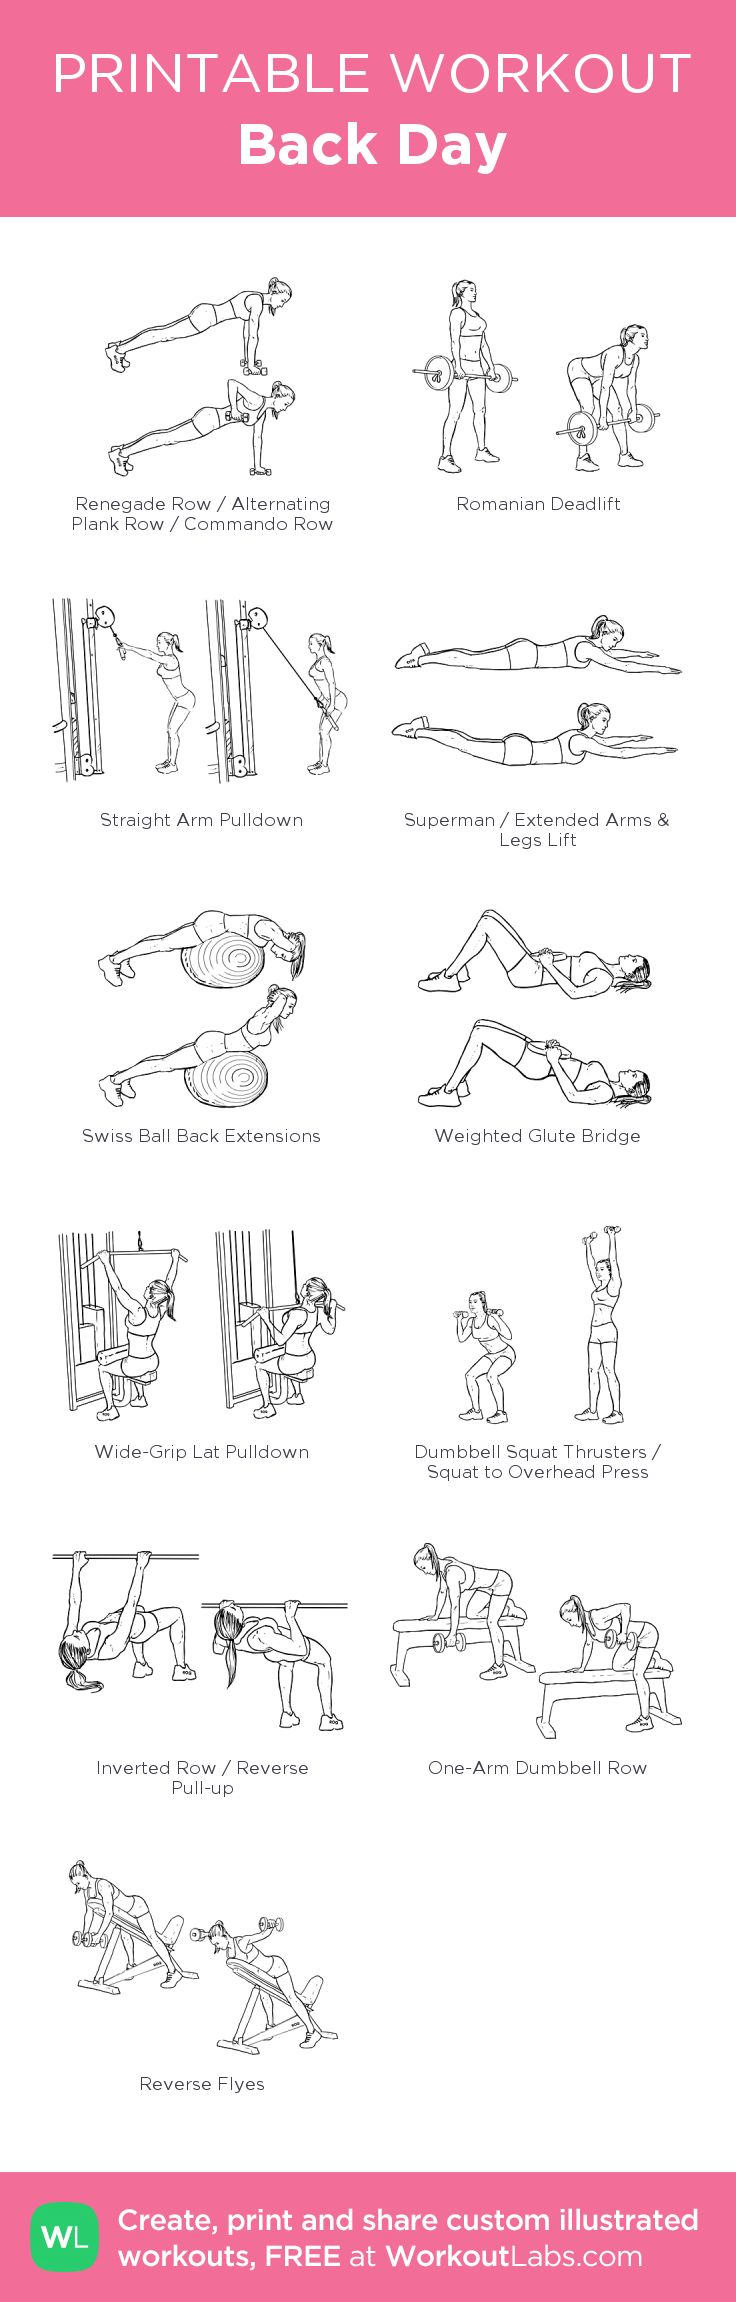 Back Day:my visual workout created at WorkoutLabs.com • Click through to customize and download as a FREE PDF! #customworkout